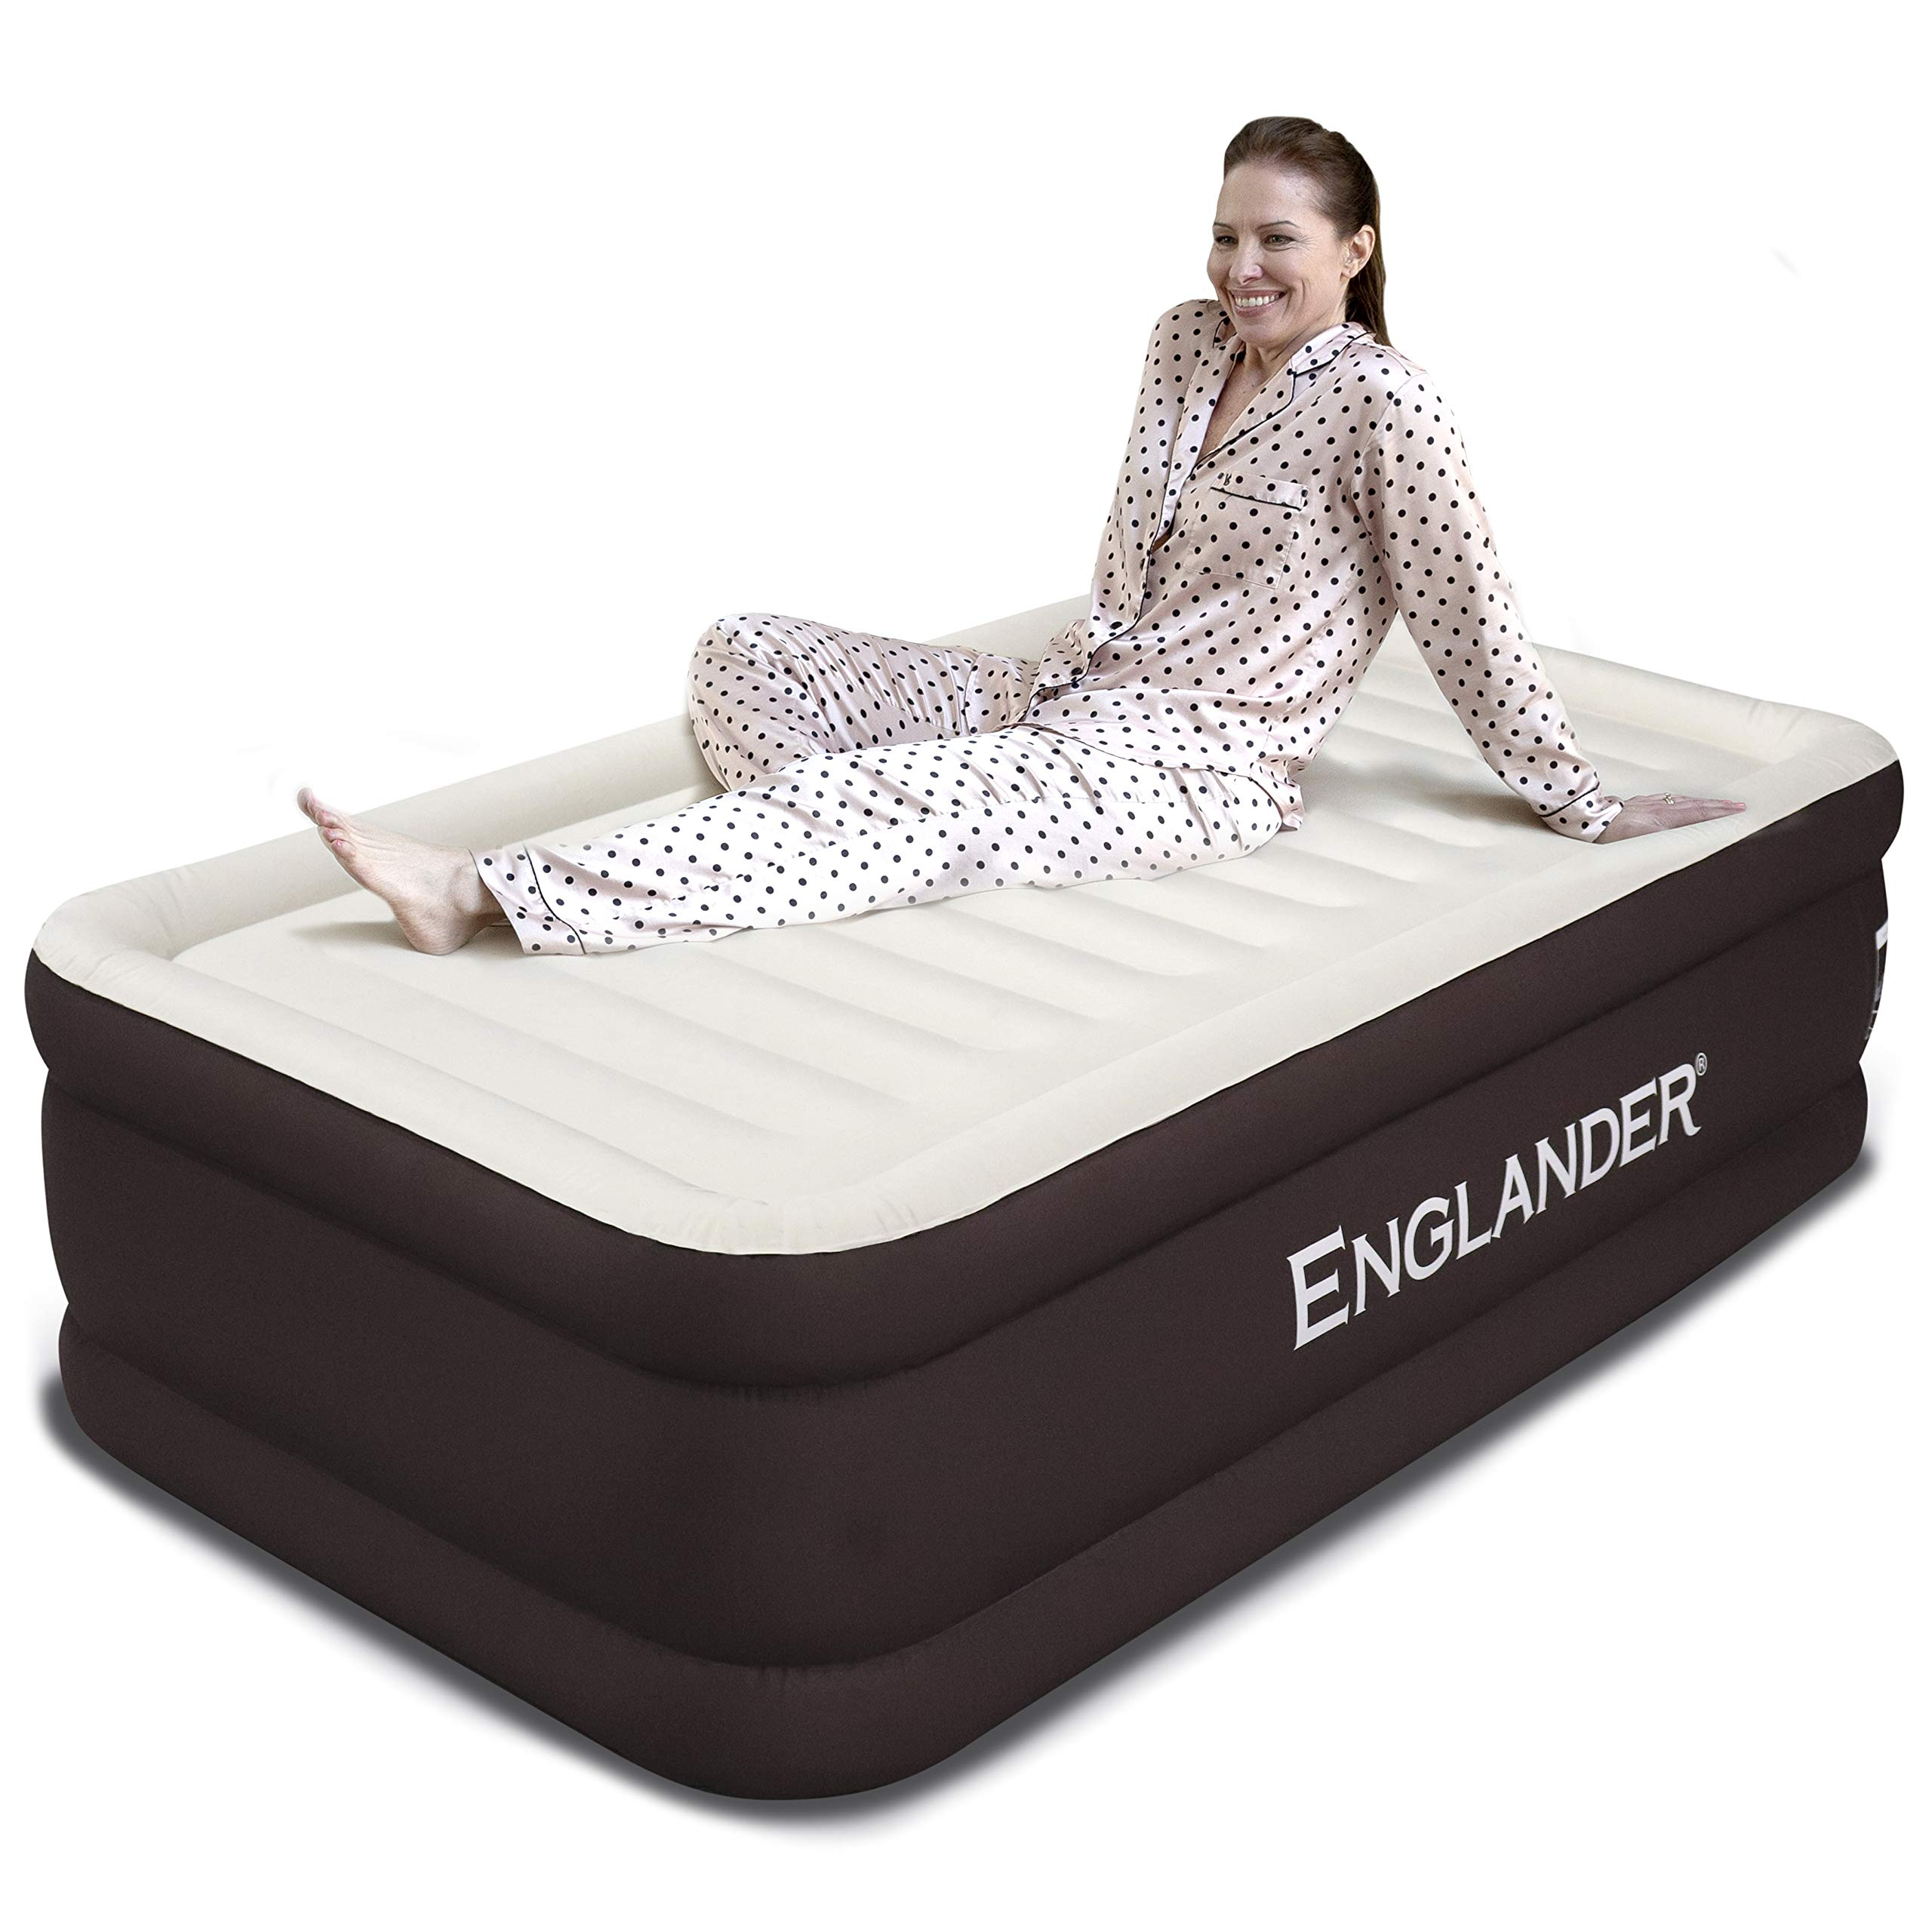 Englander First Ever Microfiber AIR Mattress Twin Size, Luxury Microfiber airbed with Built in Pump, Highest End Blow Up Bed, Inflatable Air Mattresses for Guests Home Travel 5-Year Warranty (Brown) by Englander